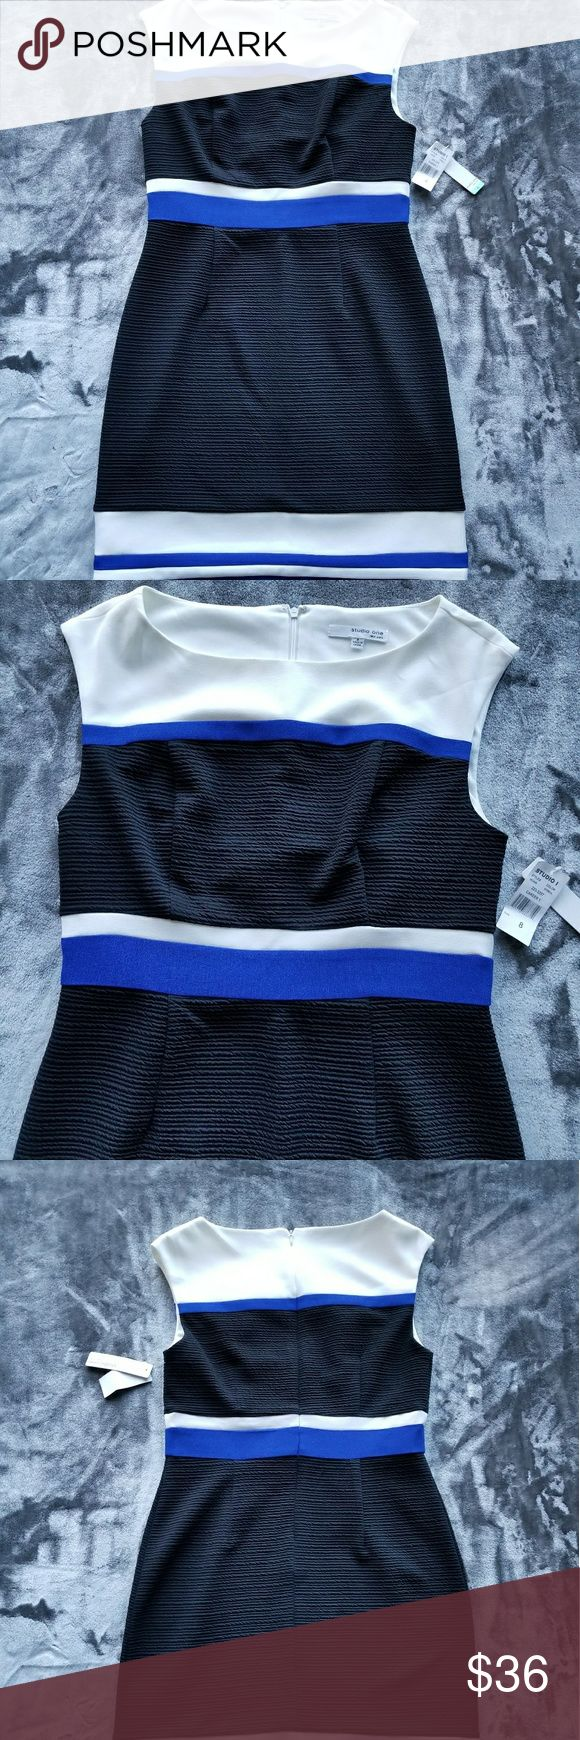 Dress Brand new dress with tags. Studio one. Made in China. Size 8. Body: 95% Polyester 5% Spandex. Lining 100% Polyester. Dry clean only. Black, beige and bright blue. Studio One Dresses Midi